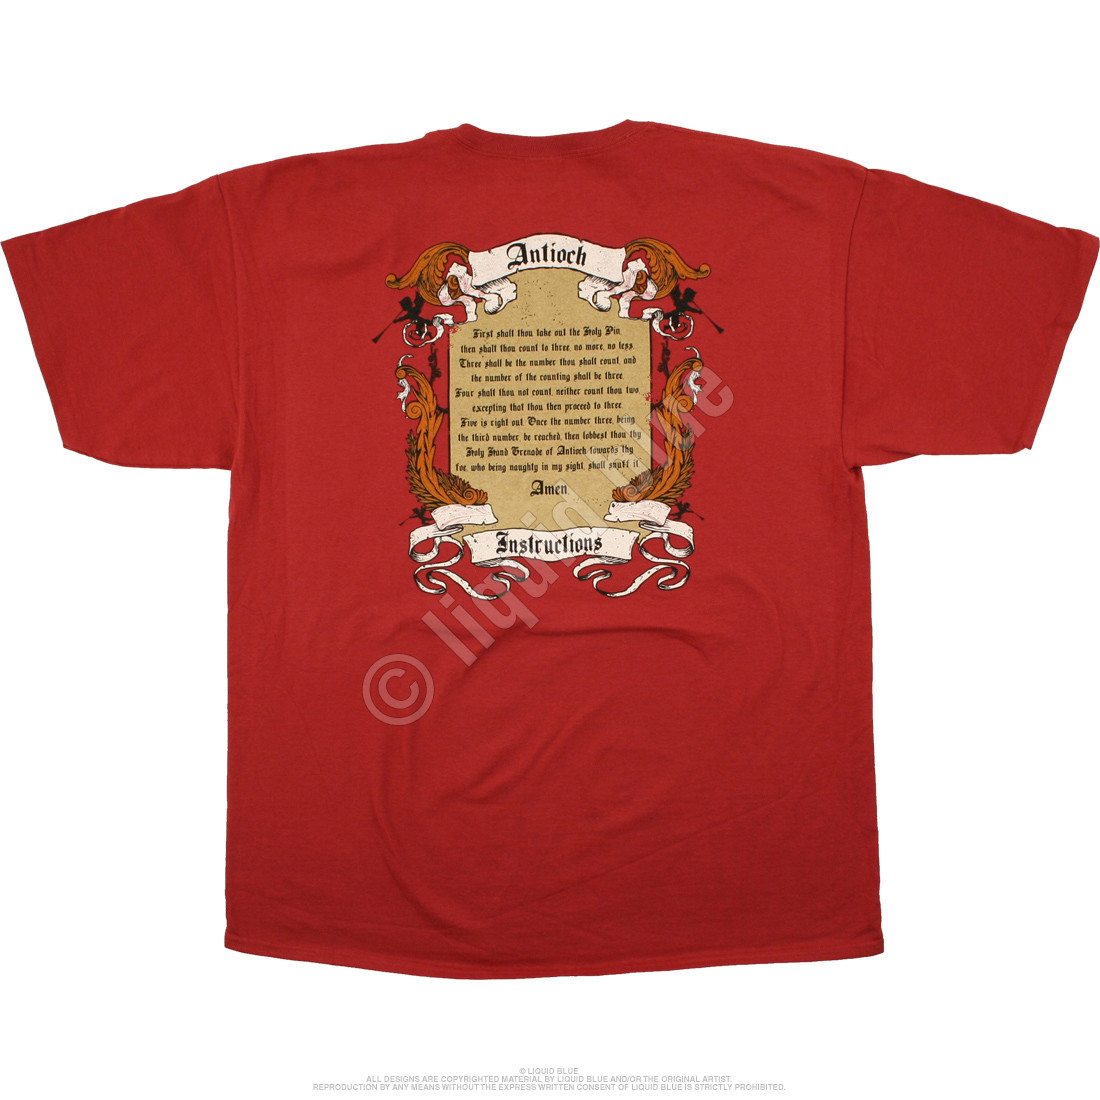 Antioch Red T-Shirt